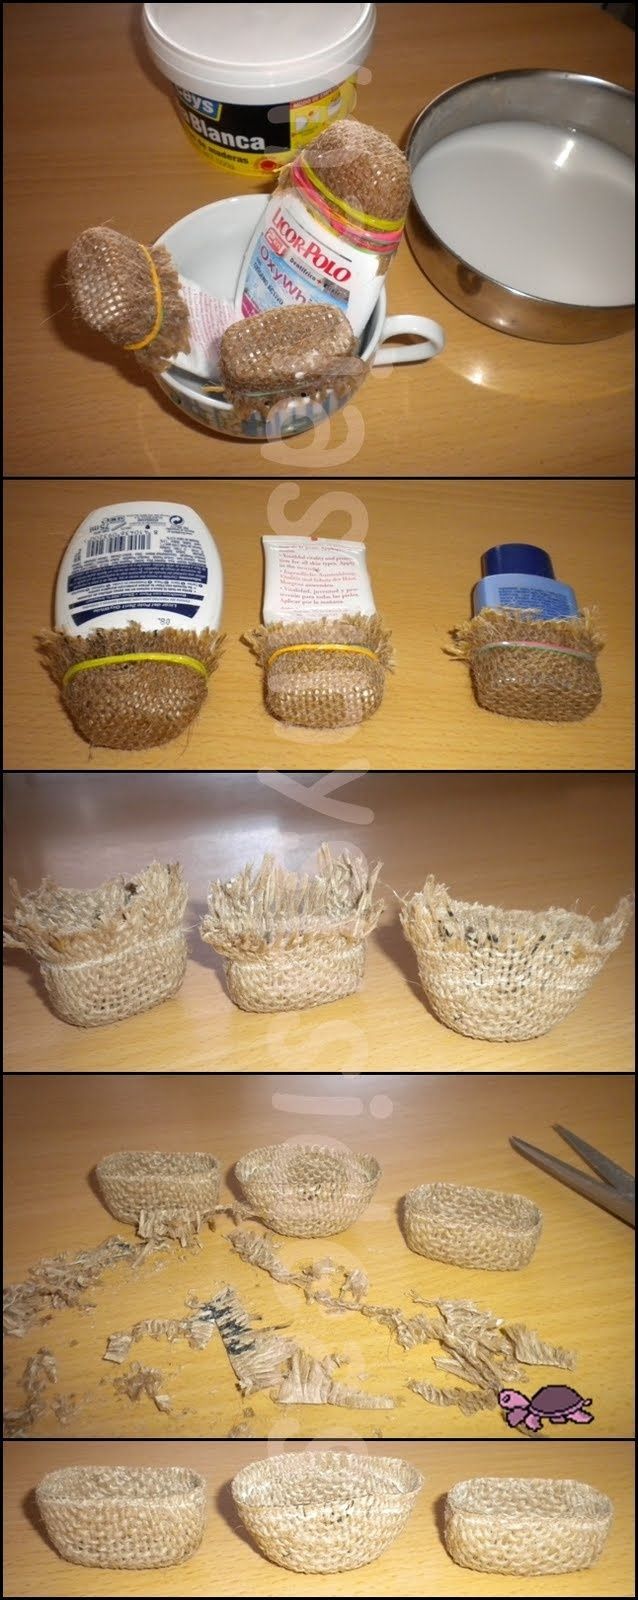 Burlap mini basket - no tutorial other than the photos - maybe watered-down glue